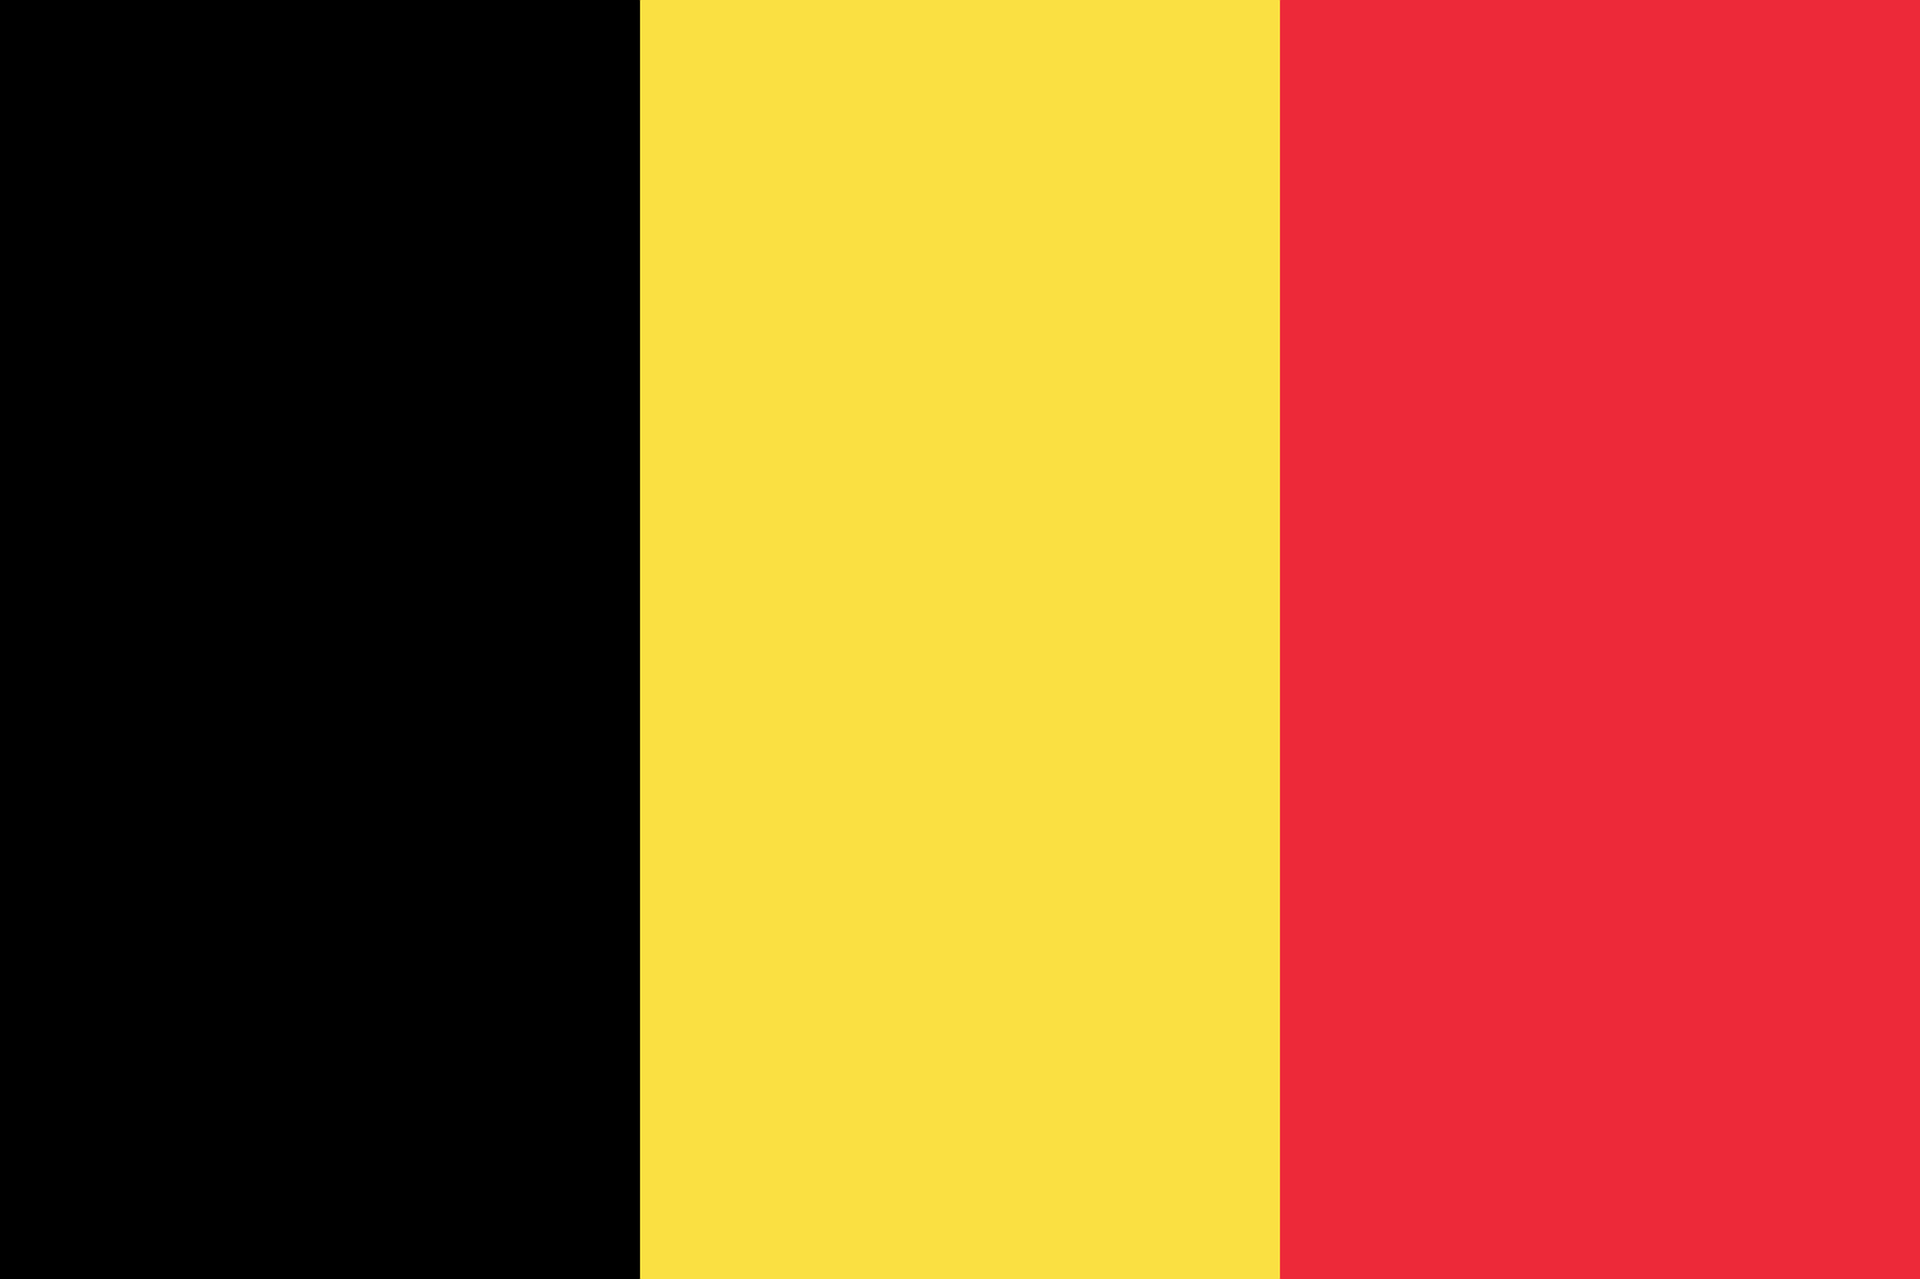 Belgium: Val-i-pac packaging compliance update